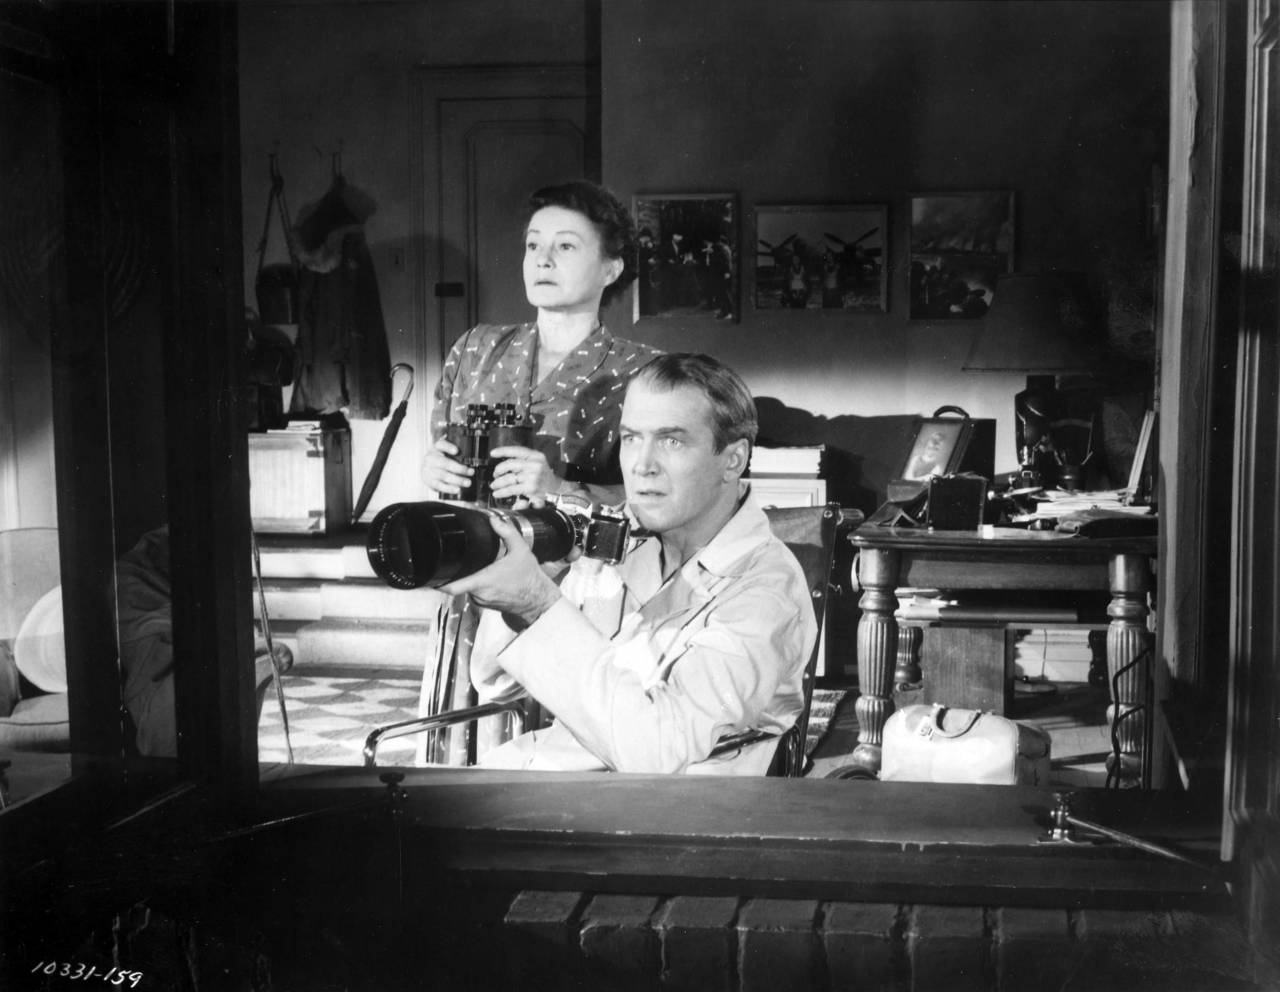 Thelma Ritter and James Stewart in Rear window directed by Alfred Hitchcock, 1954